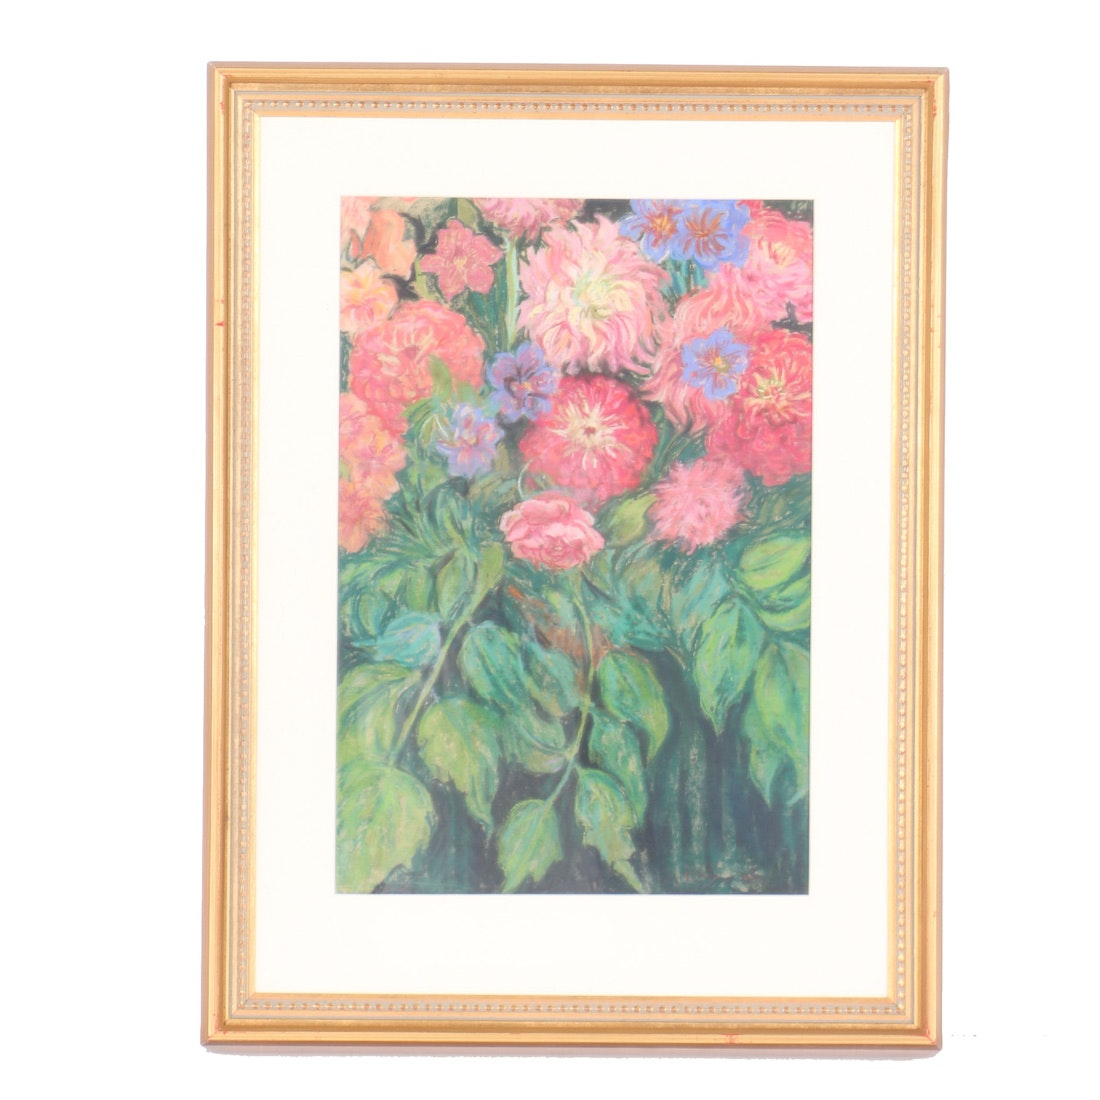 Emily B. Waite Pastel Drawing on Paper Floral Still Life